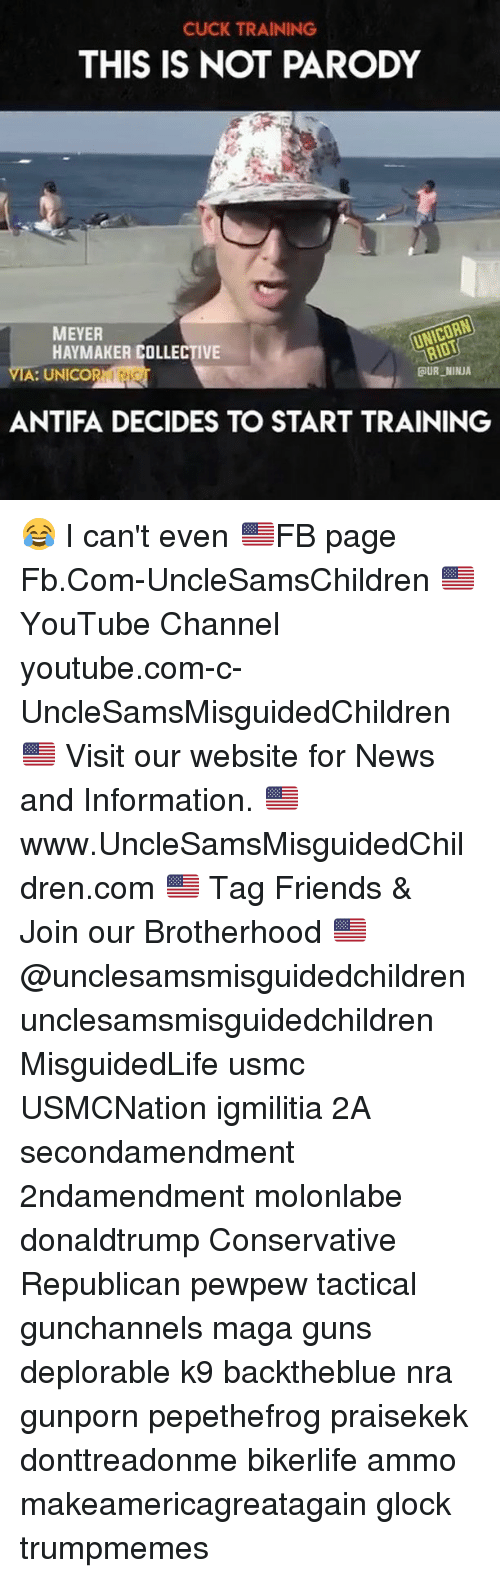 Unicorning: CUCK TRAINING  THIS IS NOT PARODY  MEYER  HAYMAKER COLLECTIVE  UNICORN  A: UNICO  UR NINJA  ANTIFA DECIDES TO START TRAINING 😂 I can't even 🇺🇸FB page Fb.Com-UncleSamsChildren 🇺🇸YouTube Channel youtube.com-c-UncleSamsMisguidedChildren 🇺🇸 Visit our website for News and Information. 🇺🇸 www.UncleSamsMisguidedChildren.com 🇺🇸 Tag Friends & Join our Brotherhood 🇺🇸 @unclesamsmisguidedchildren unclesamsmisguidedchildren MisguidedLife usmc USMCNation igmilitia 2A secondamendment 2ndamendment molonlabe donaldtrump Conservative Republican pewpew tactical gunchannels maga guns deplorable k9 backtheblue nra gunporn pepethefrog praisekek donttreadonme bikerlife ammo makeamericagreatagain glock trumpmemes